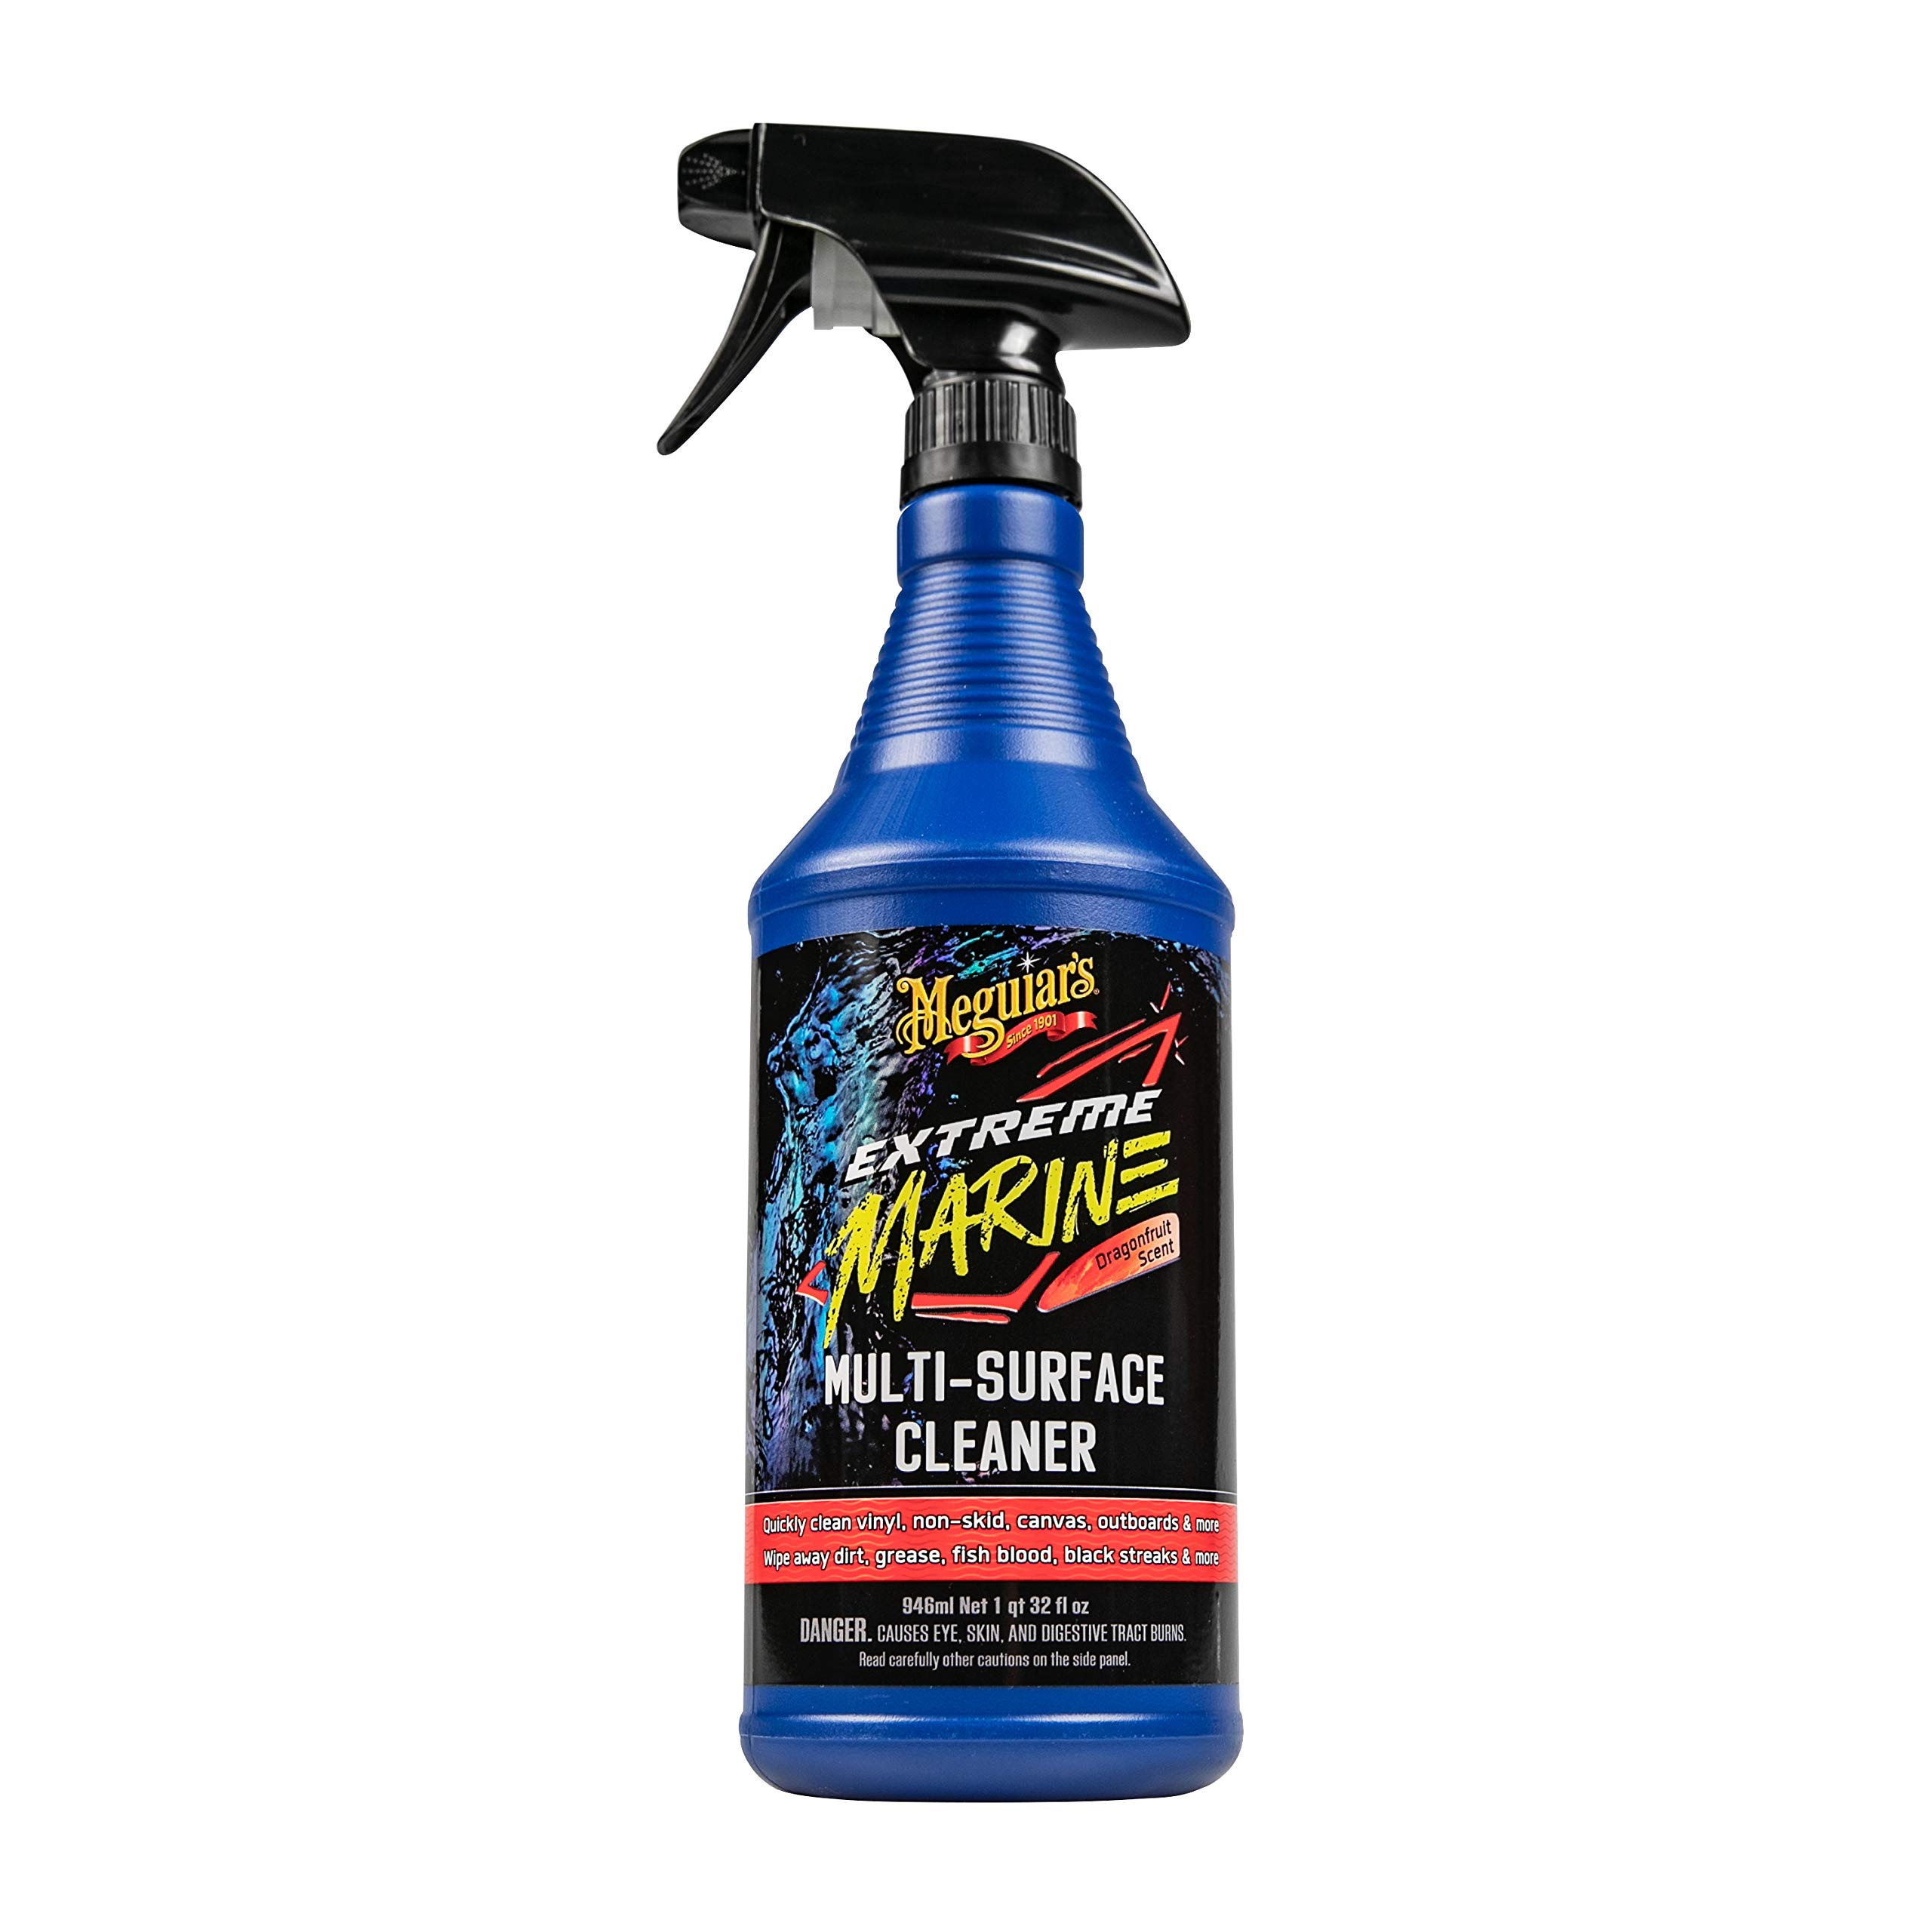 Meguiar's M180332 Extreme Marine Multi-Surface Cleaner, 32 Fluid Ounces